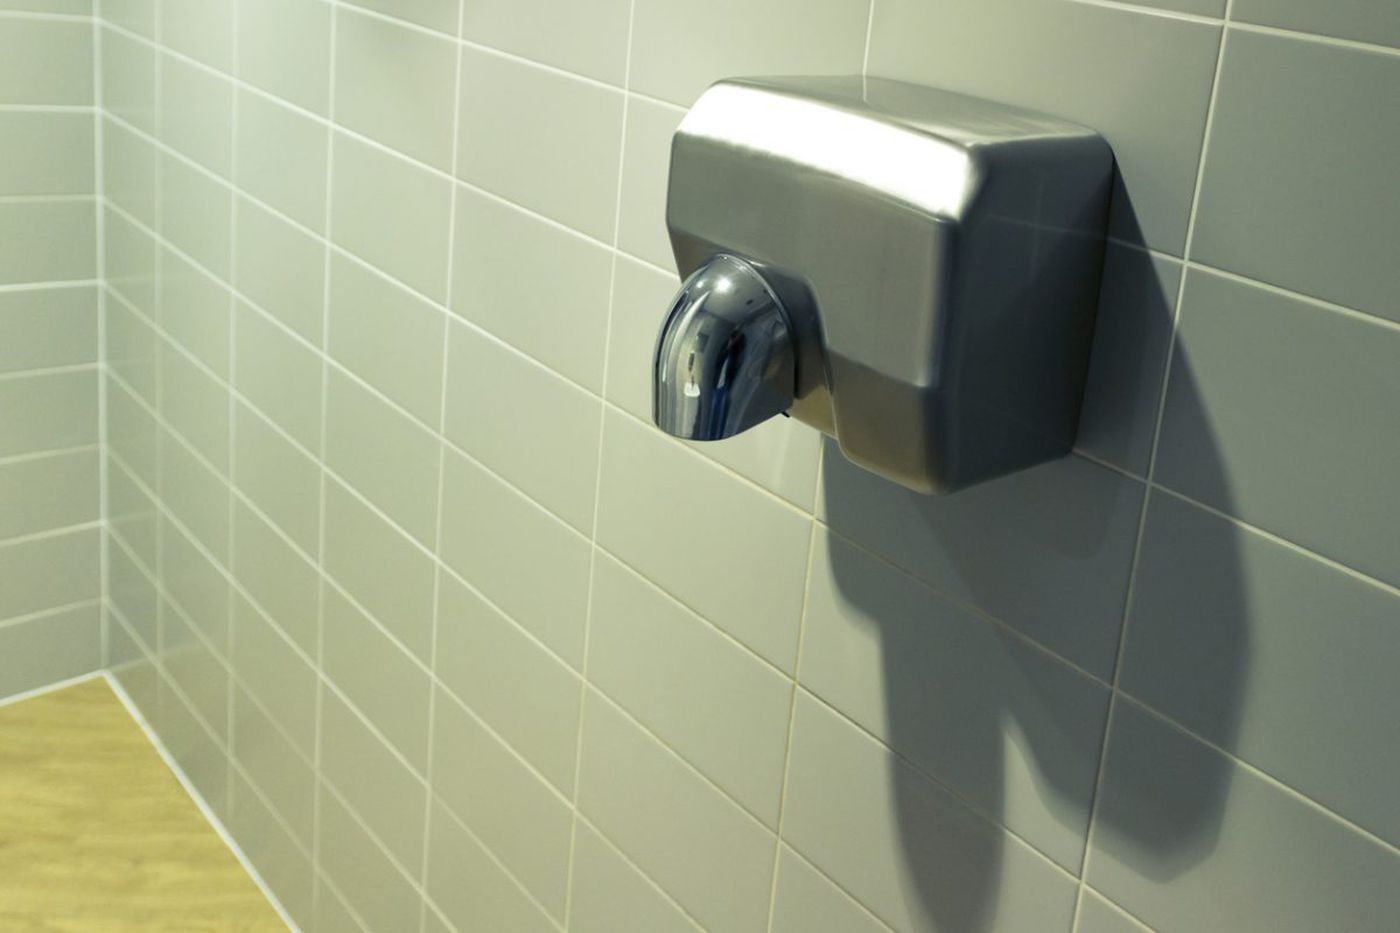 Bathroom hand dryers leave your hands dirtier than before, gross new study says